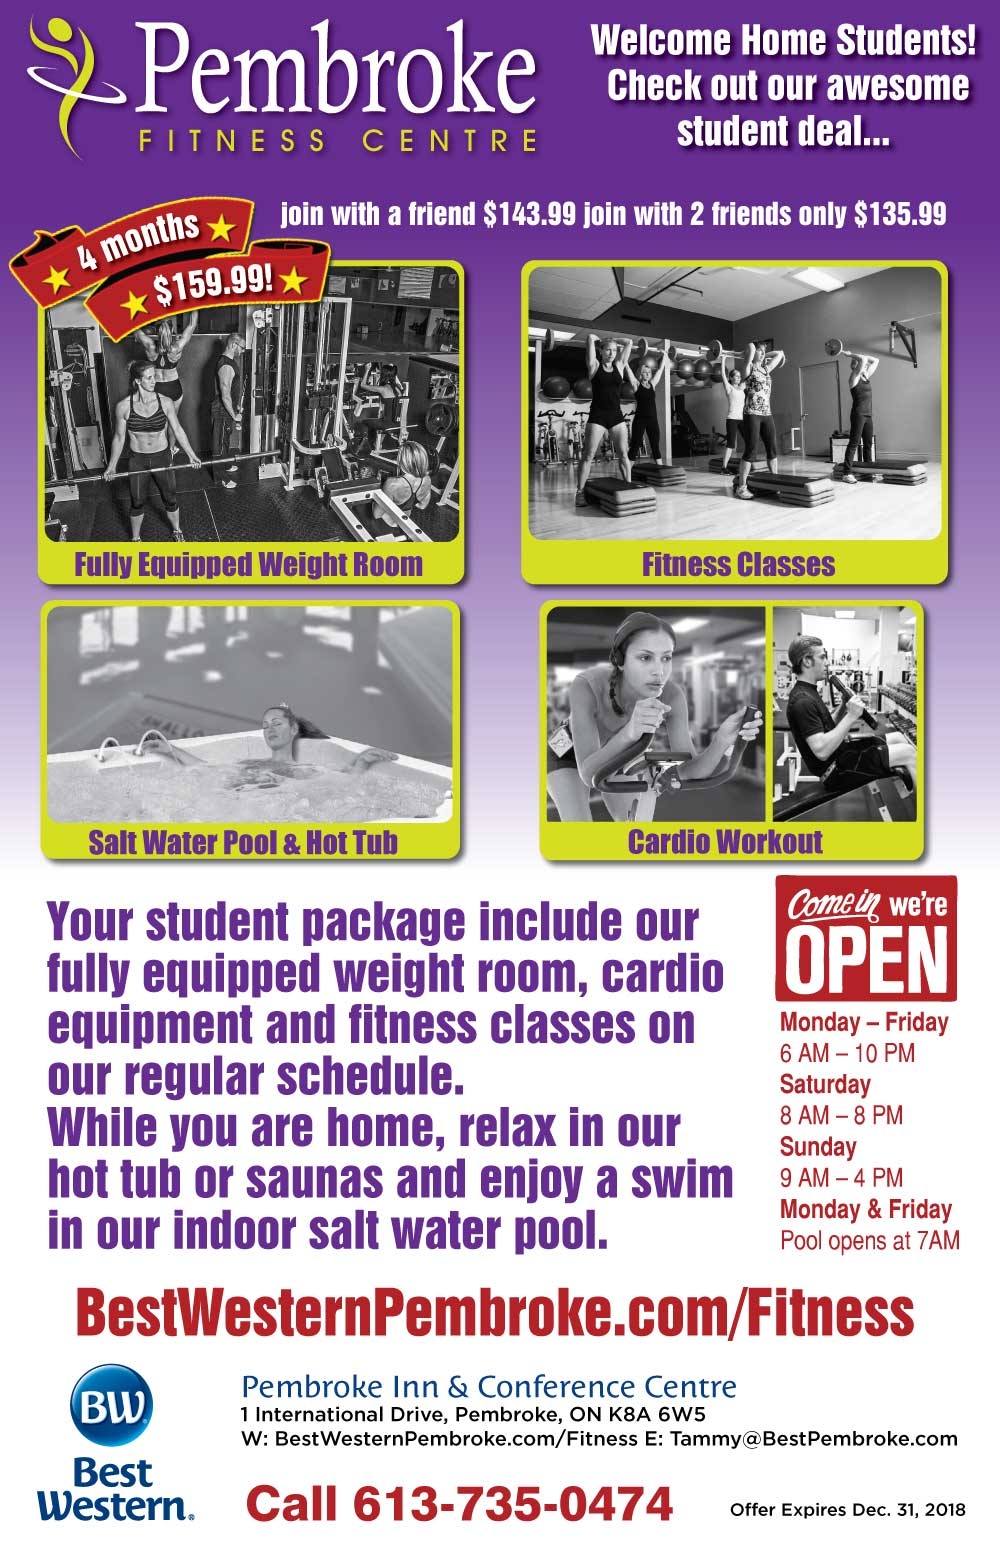 Students Save on Fitness Membership Rates